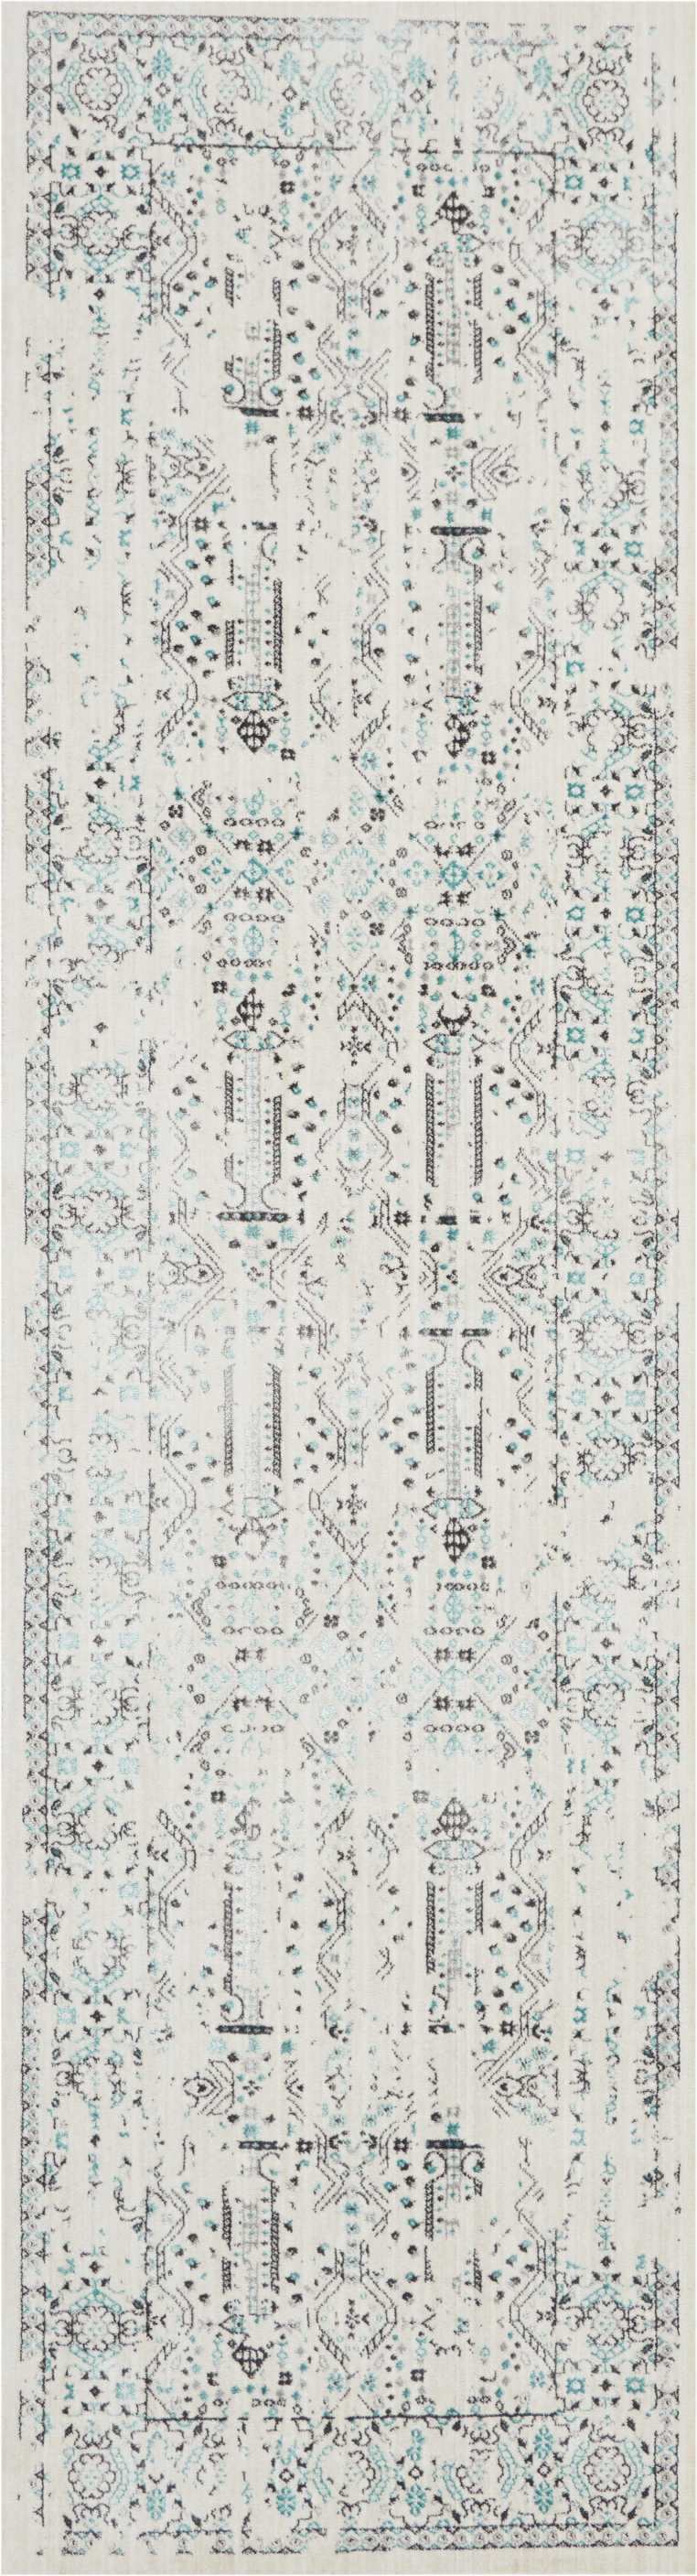 kathy ireland Home Silver Screen KI343 White and Teal Blue 8' Runner  Hallway Rug